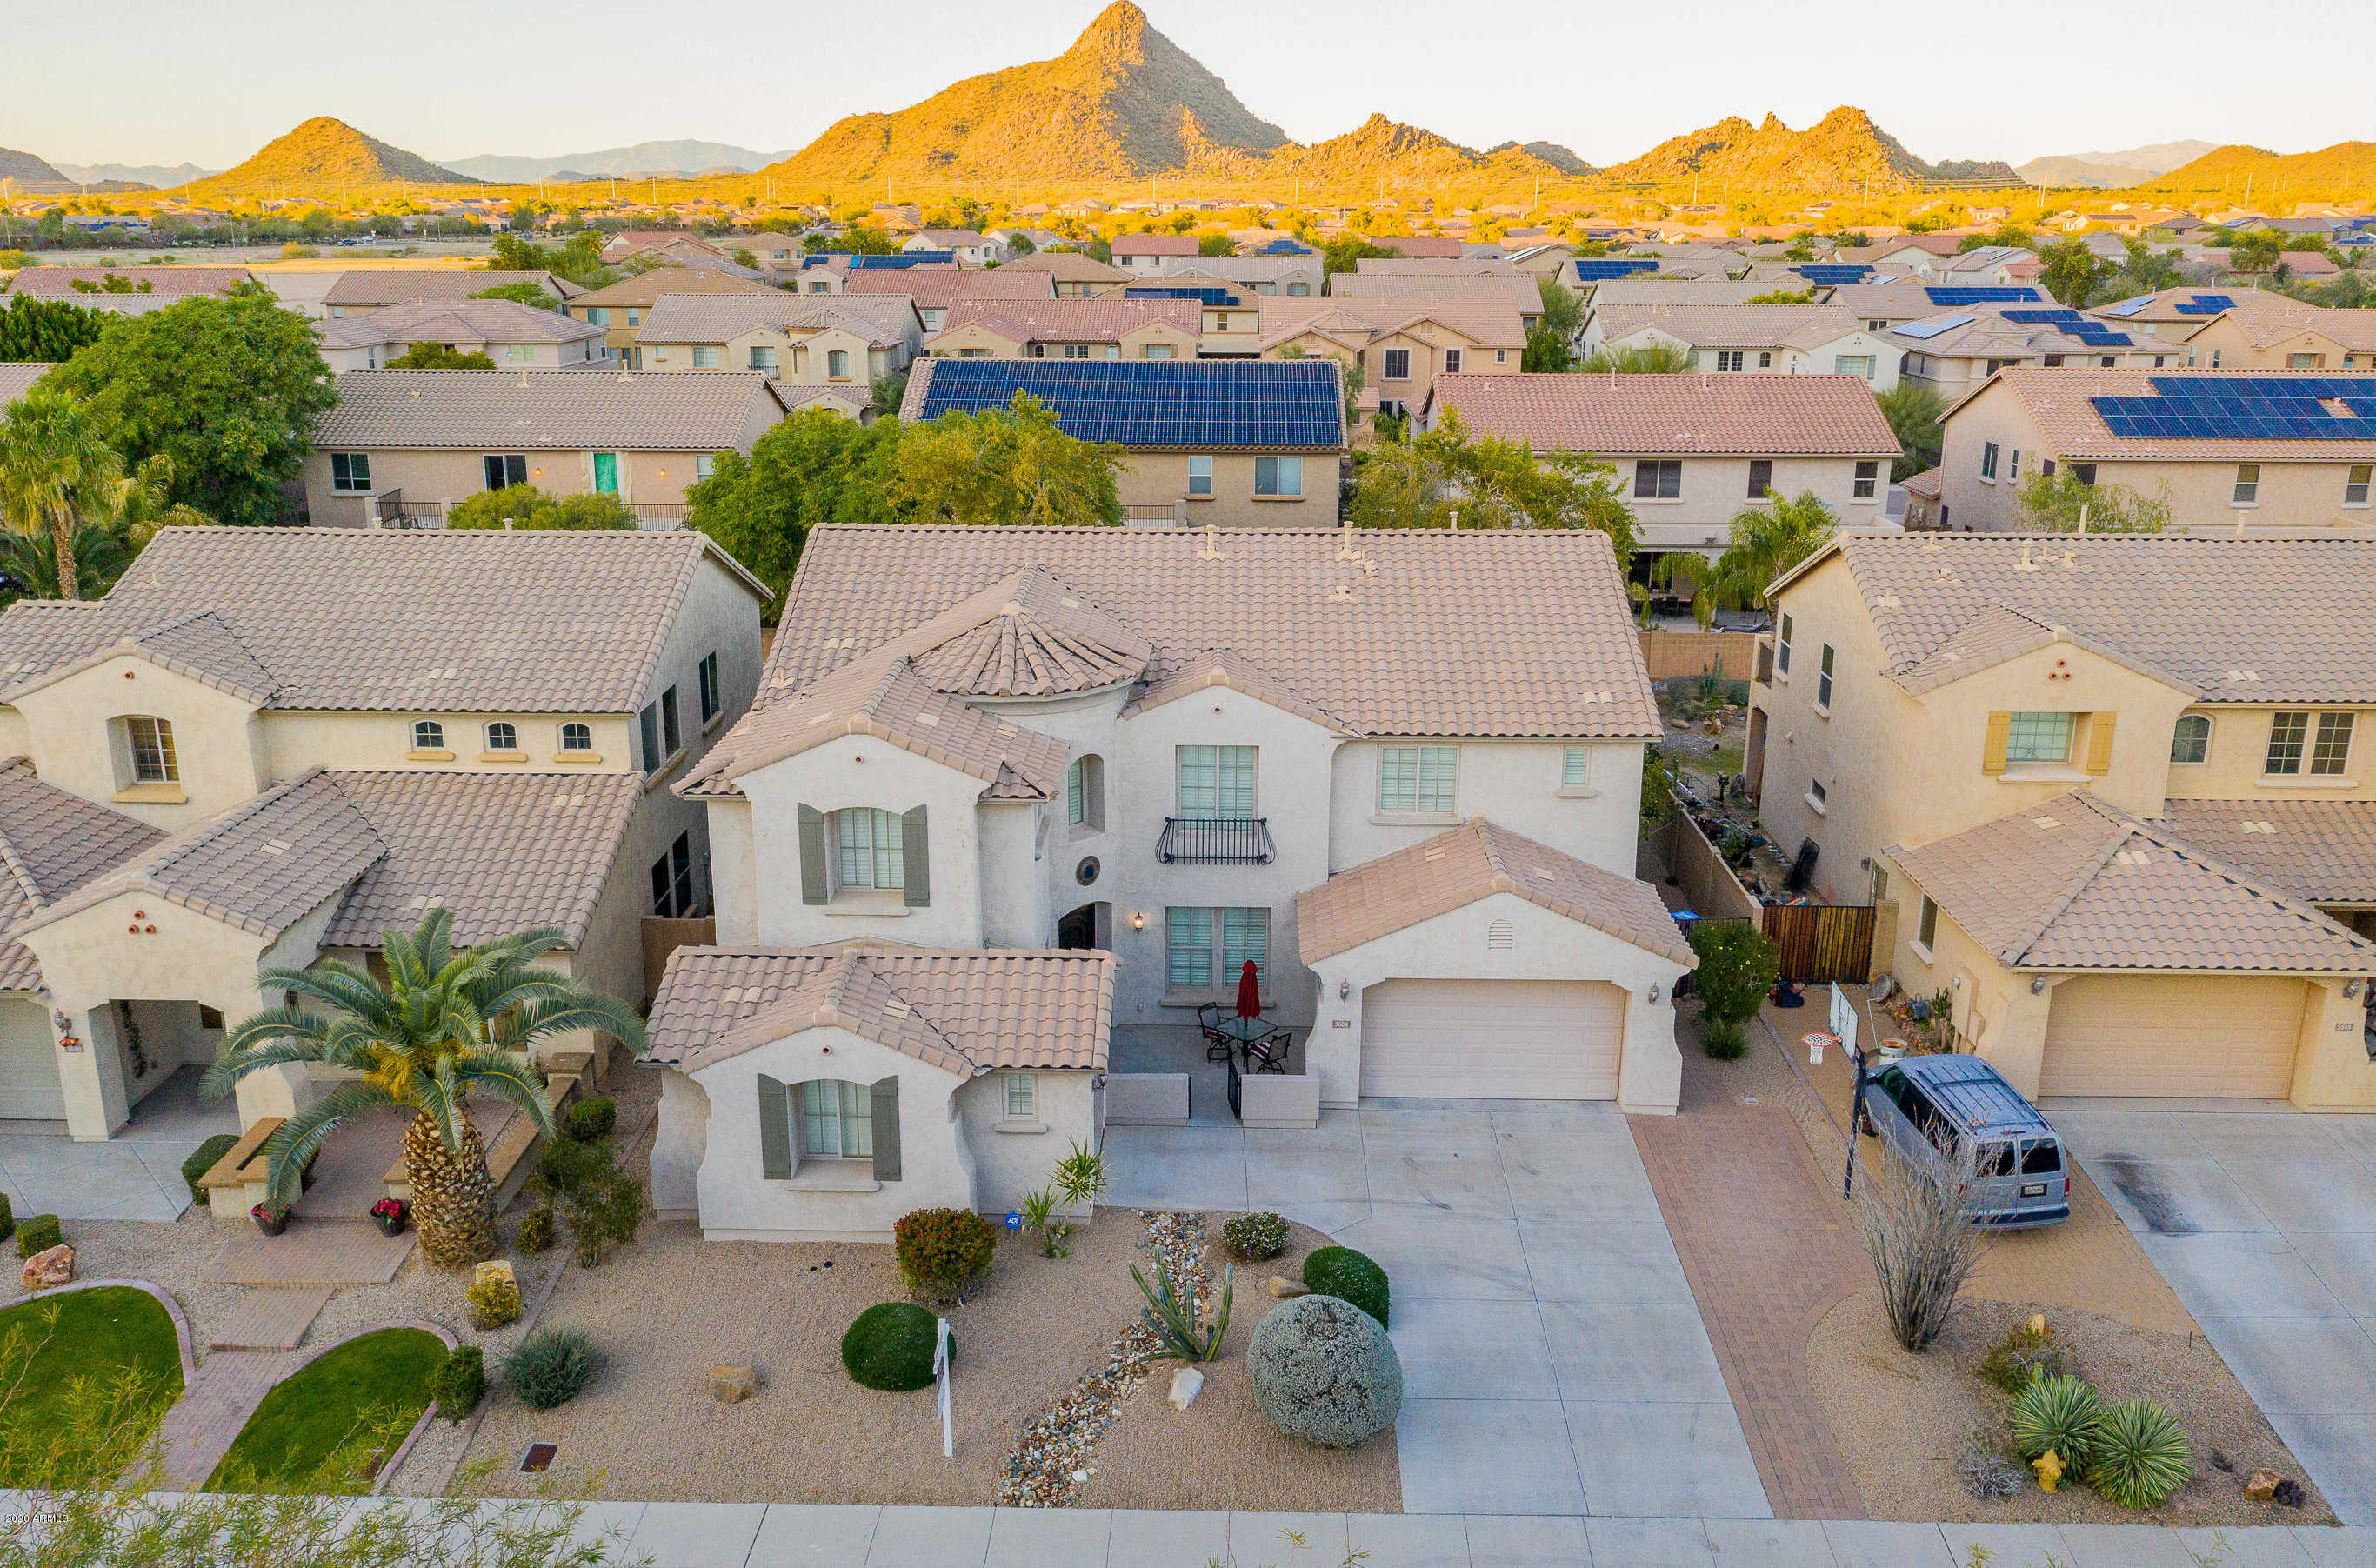 $510,000 - 6Br/5Ba - Home for Sale in Stetson Valley Parcels 18 19 24 25 26, Phoenix